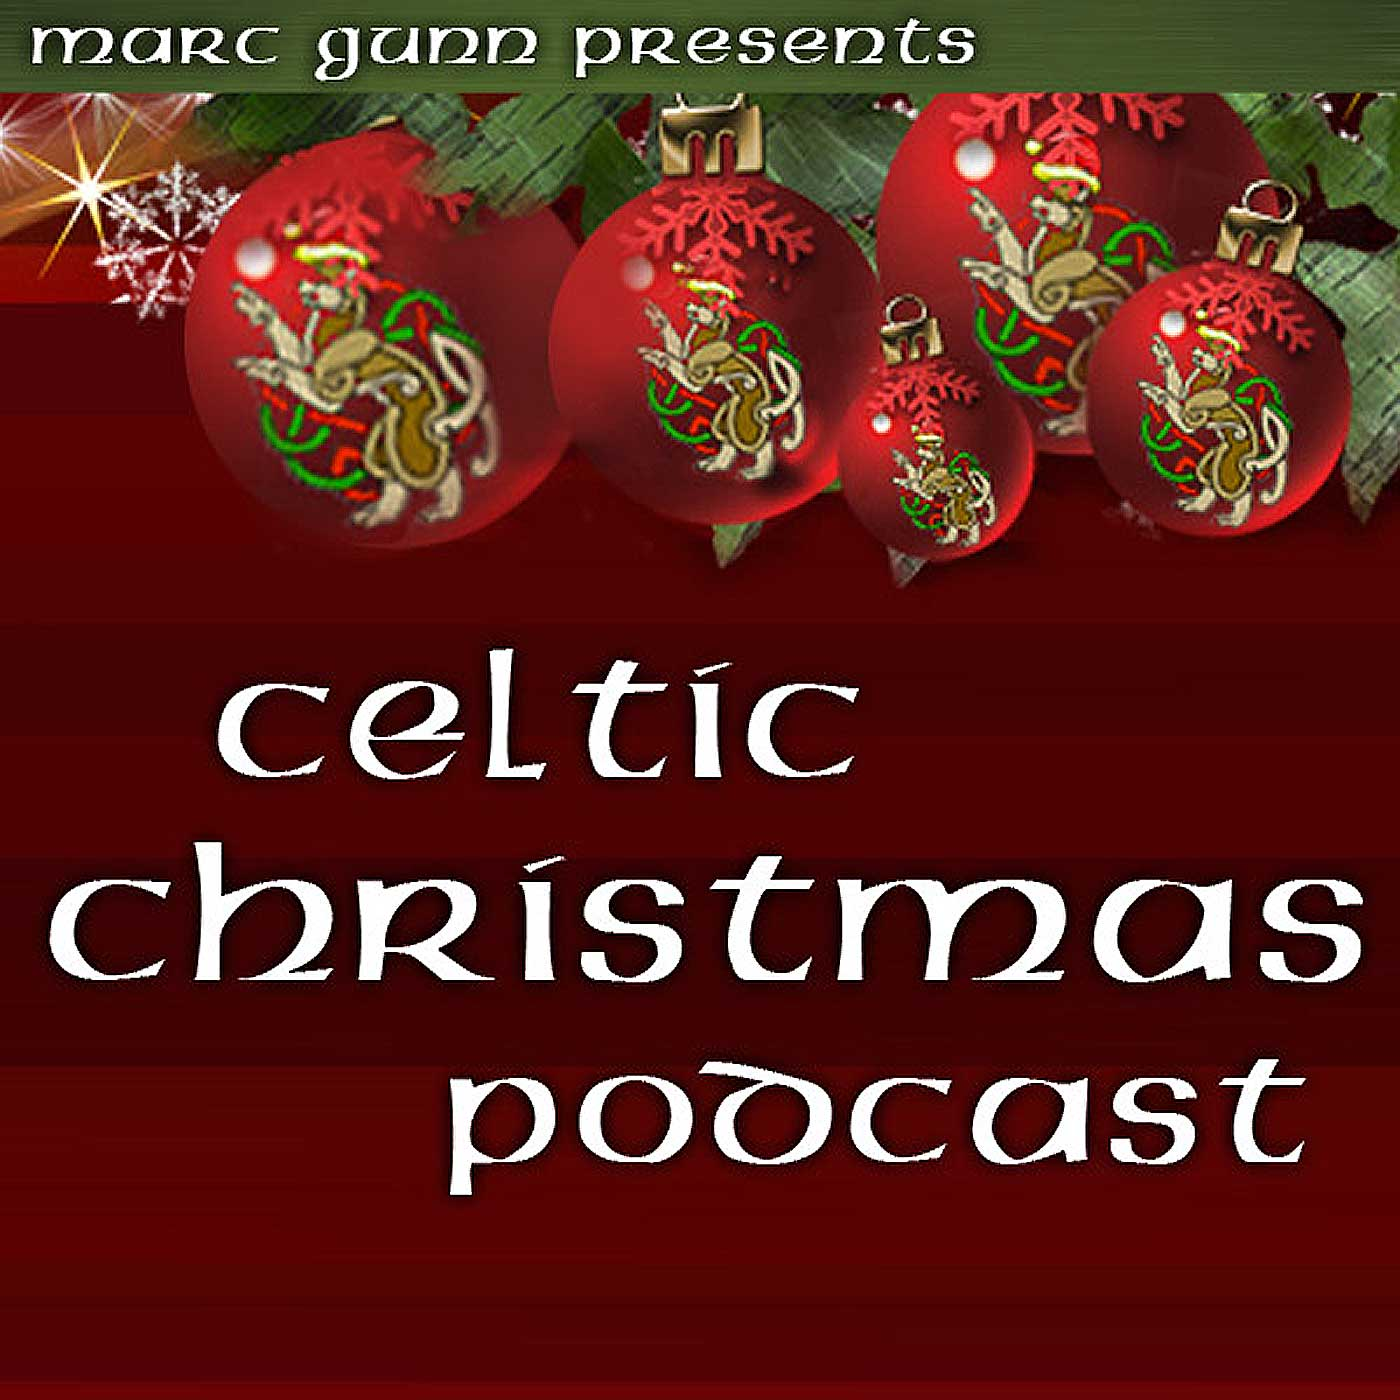 Help Launch the Celtic Christmas Podcast 2019